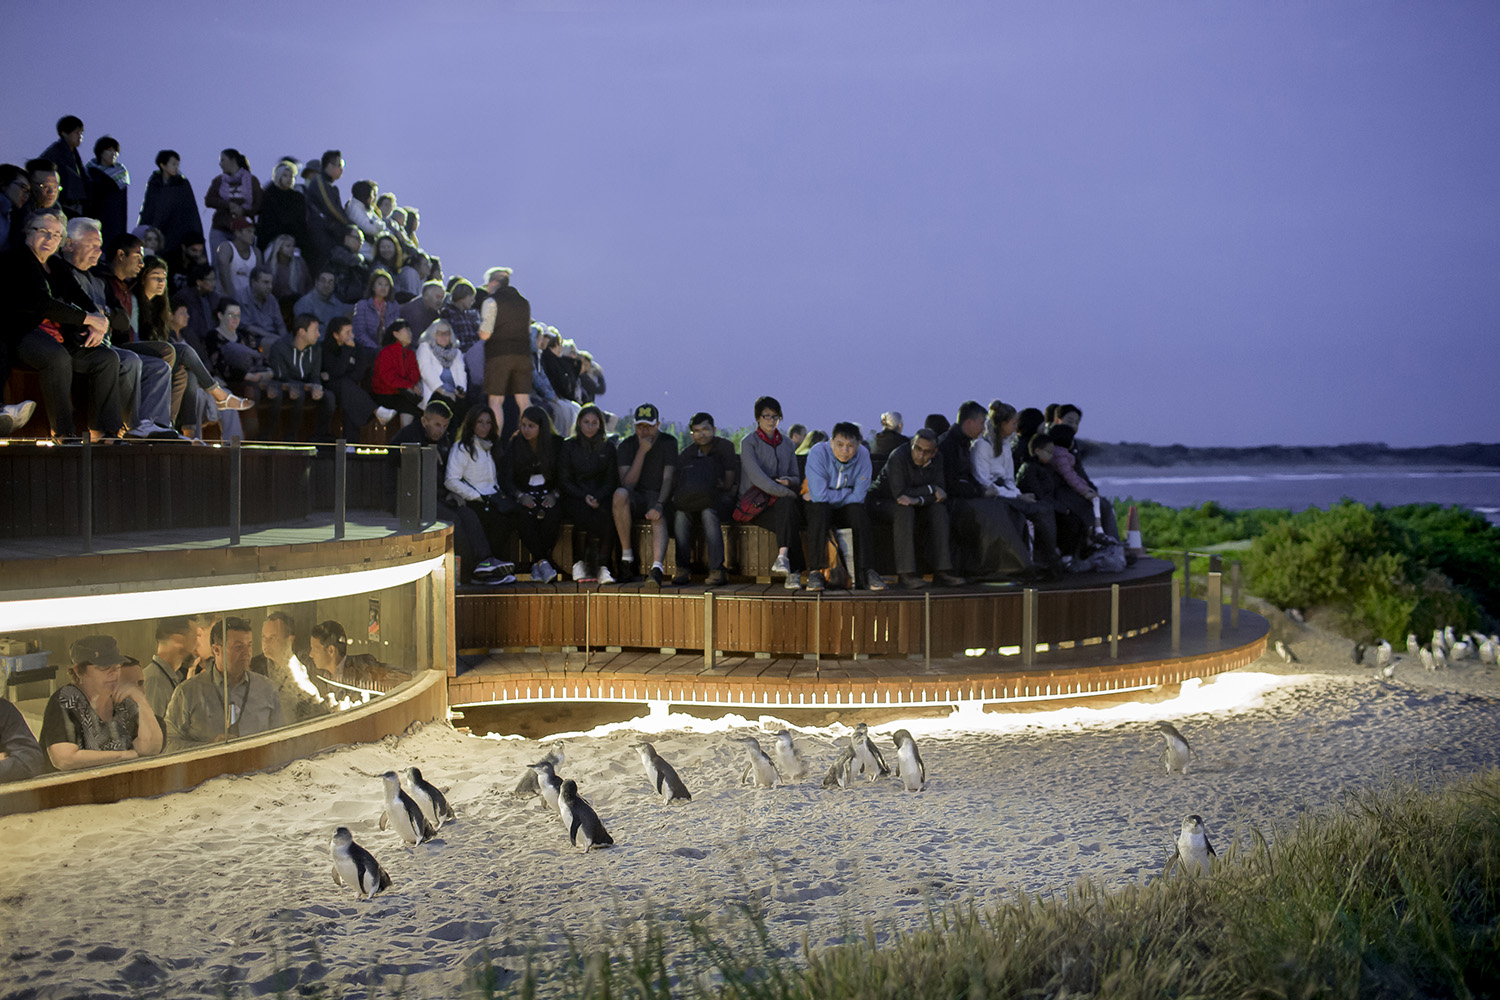 Penguins Plus at the Penguin Parade on Phillip island